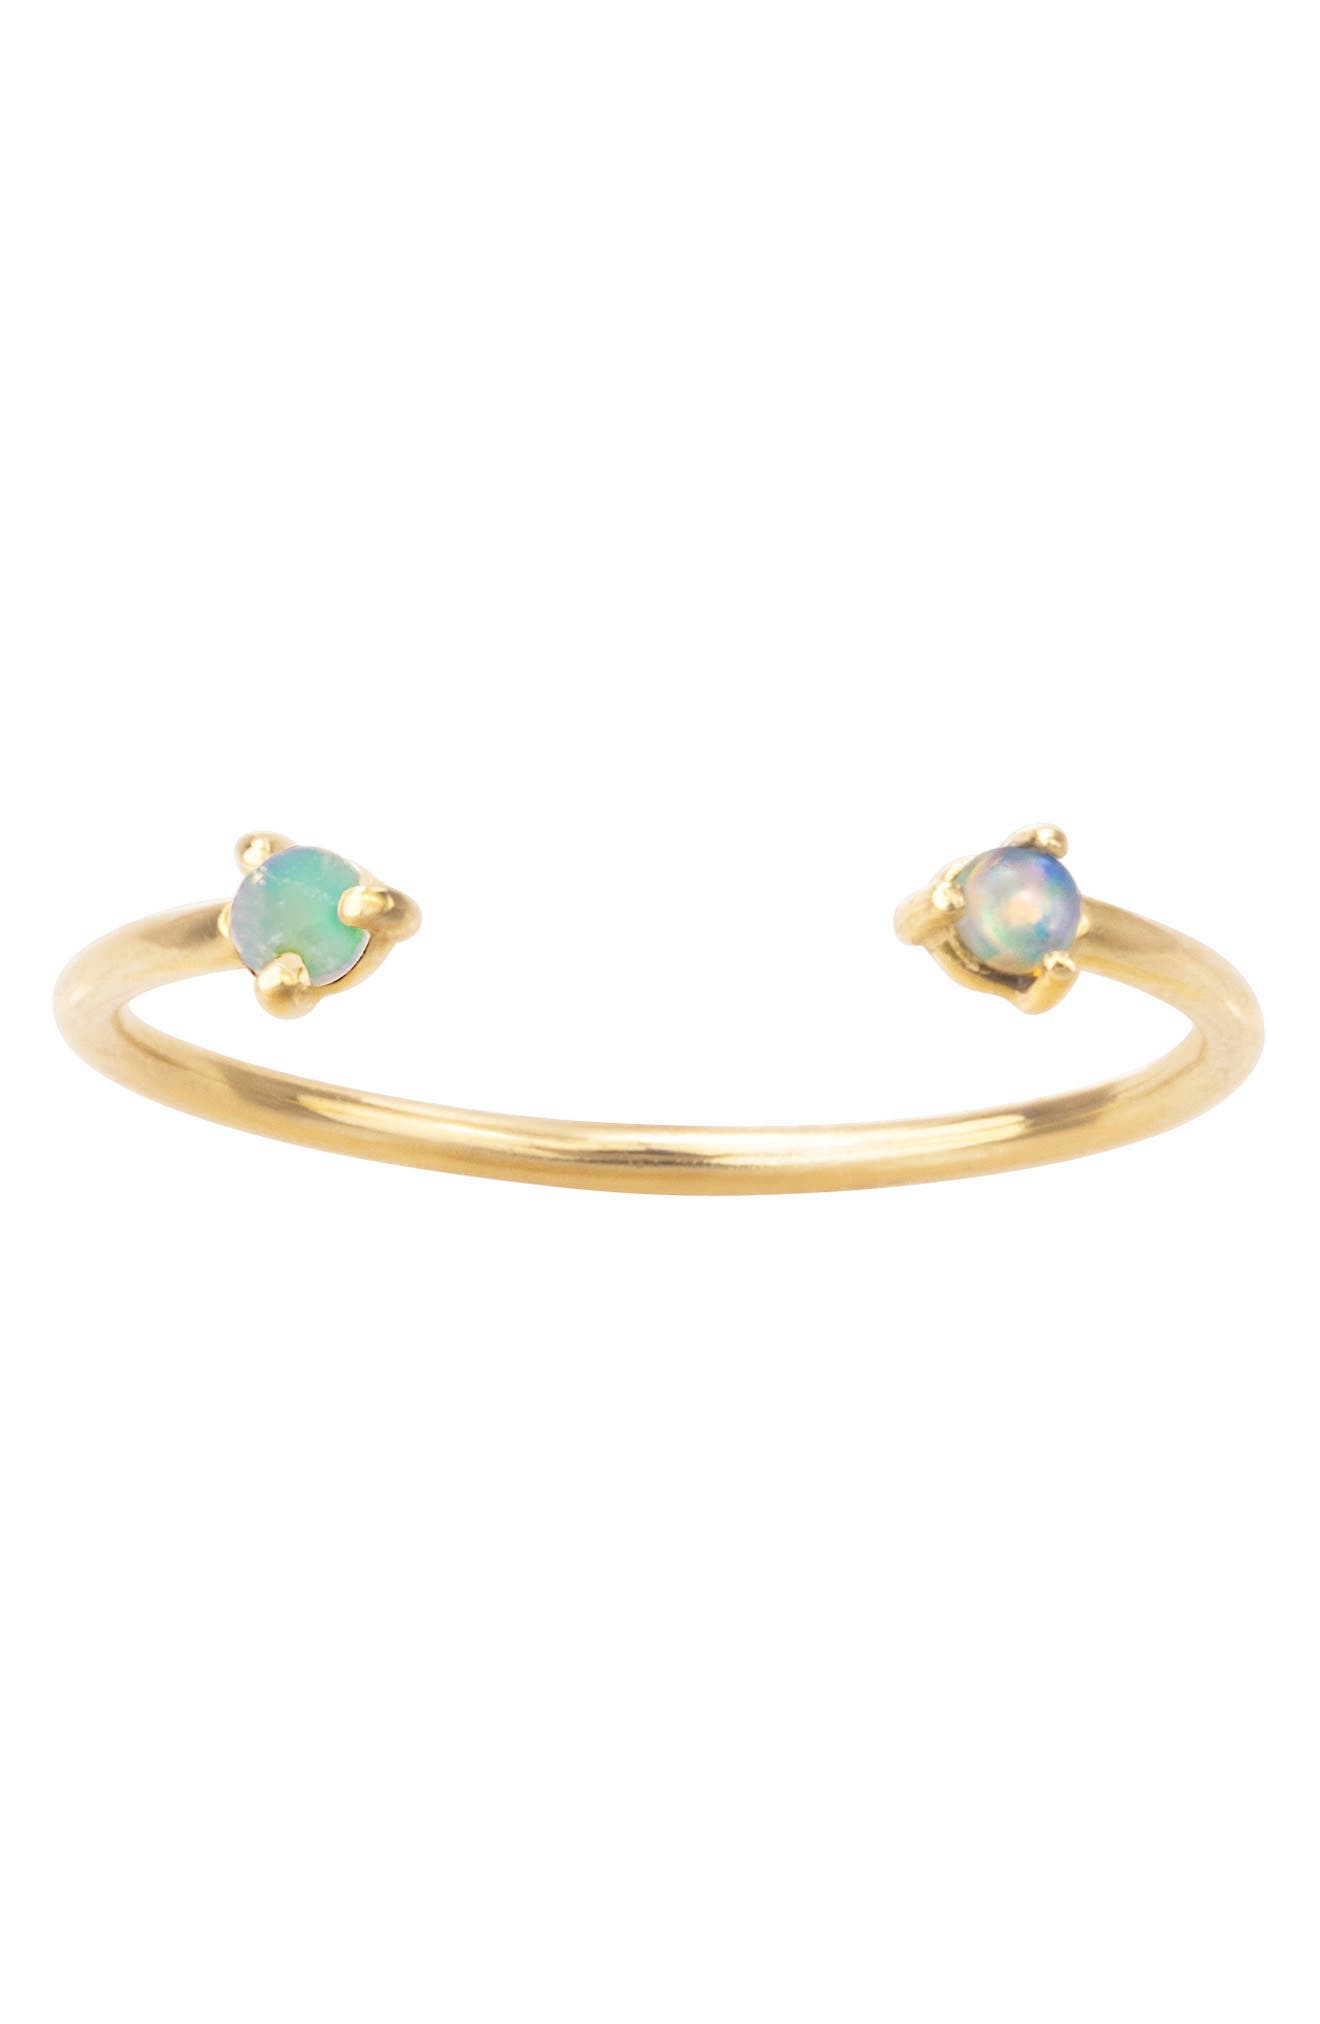 Counting Collection Two-Step Opal Ring,                         Main,                         color, Yellow Gold